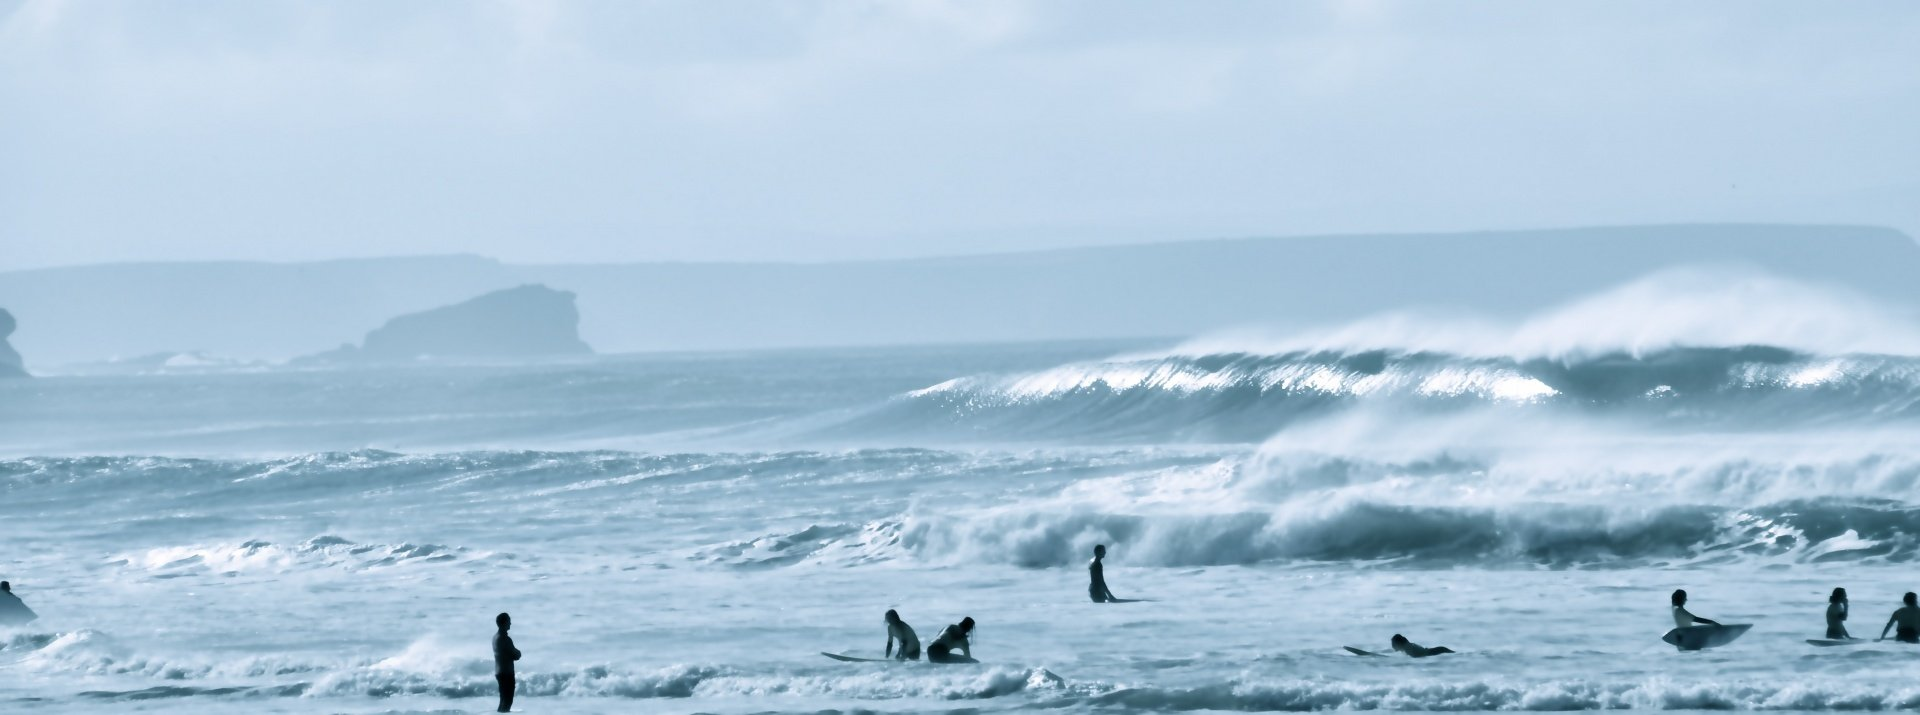 Andy Graham's photo of Porthtowan